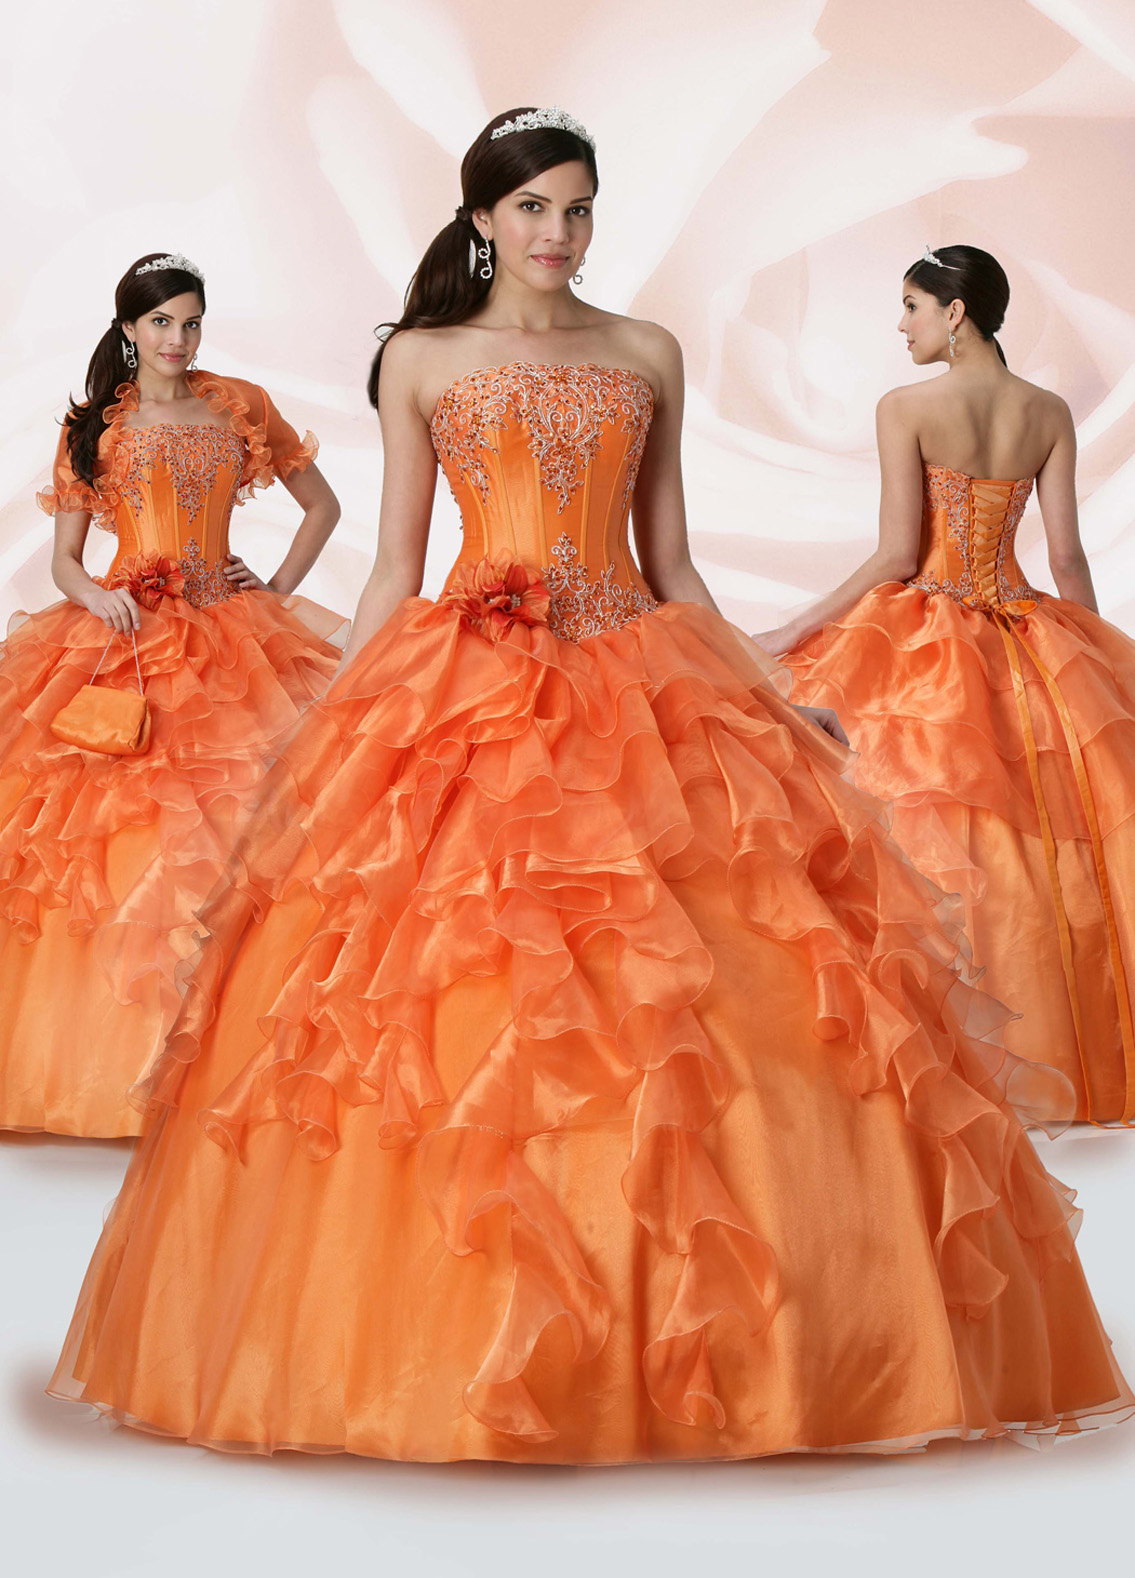 Bridesmaid Dresses Fashion Trends